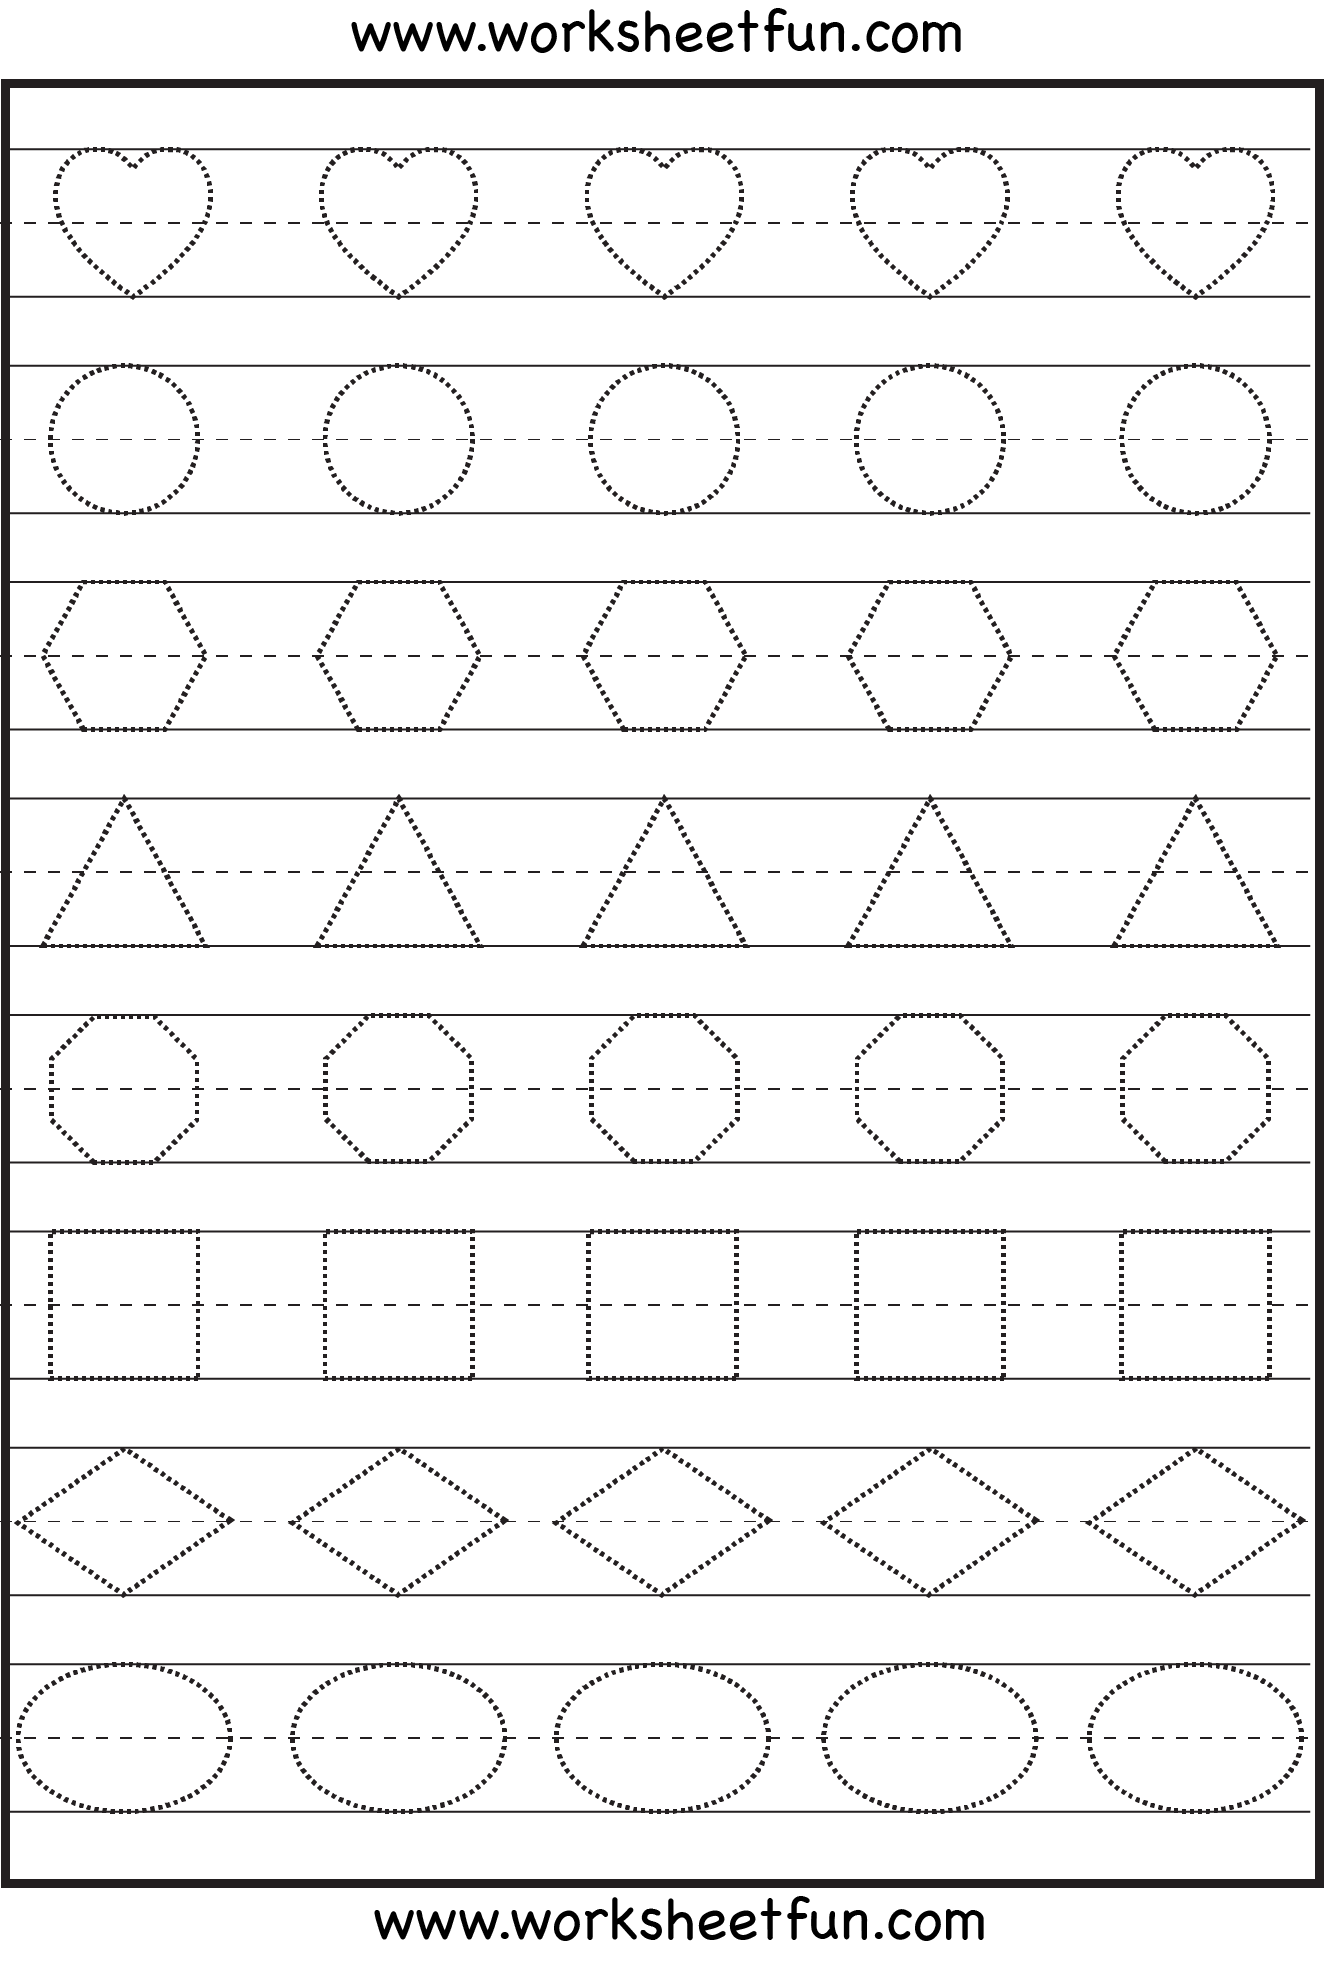 Worksheet Preschool Printable Worksheets 1000 images about school on pinterest printable preschool worksheets and preschool